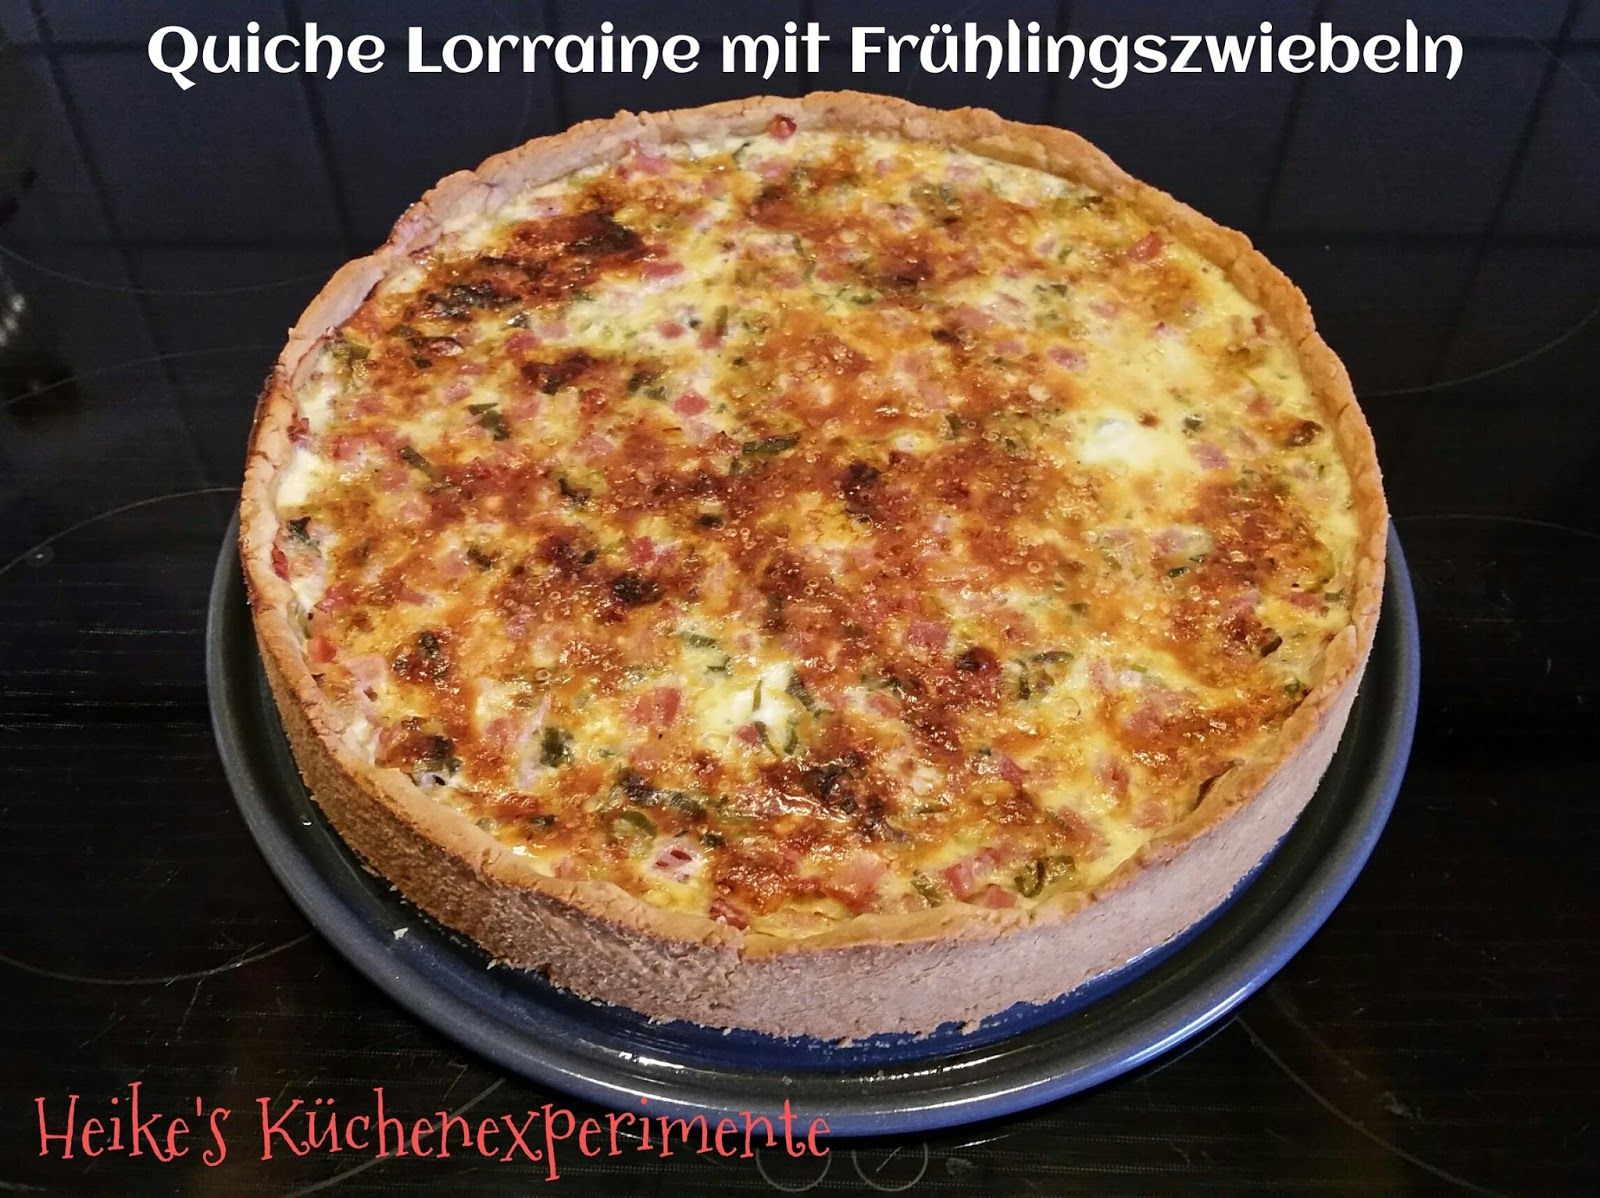 heike 39 s k chenexperimente quiche lorraine mit fr hlingszwiebeln. Black Bedroom Furniture Sets. Home Design Ideas